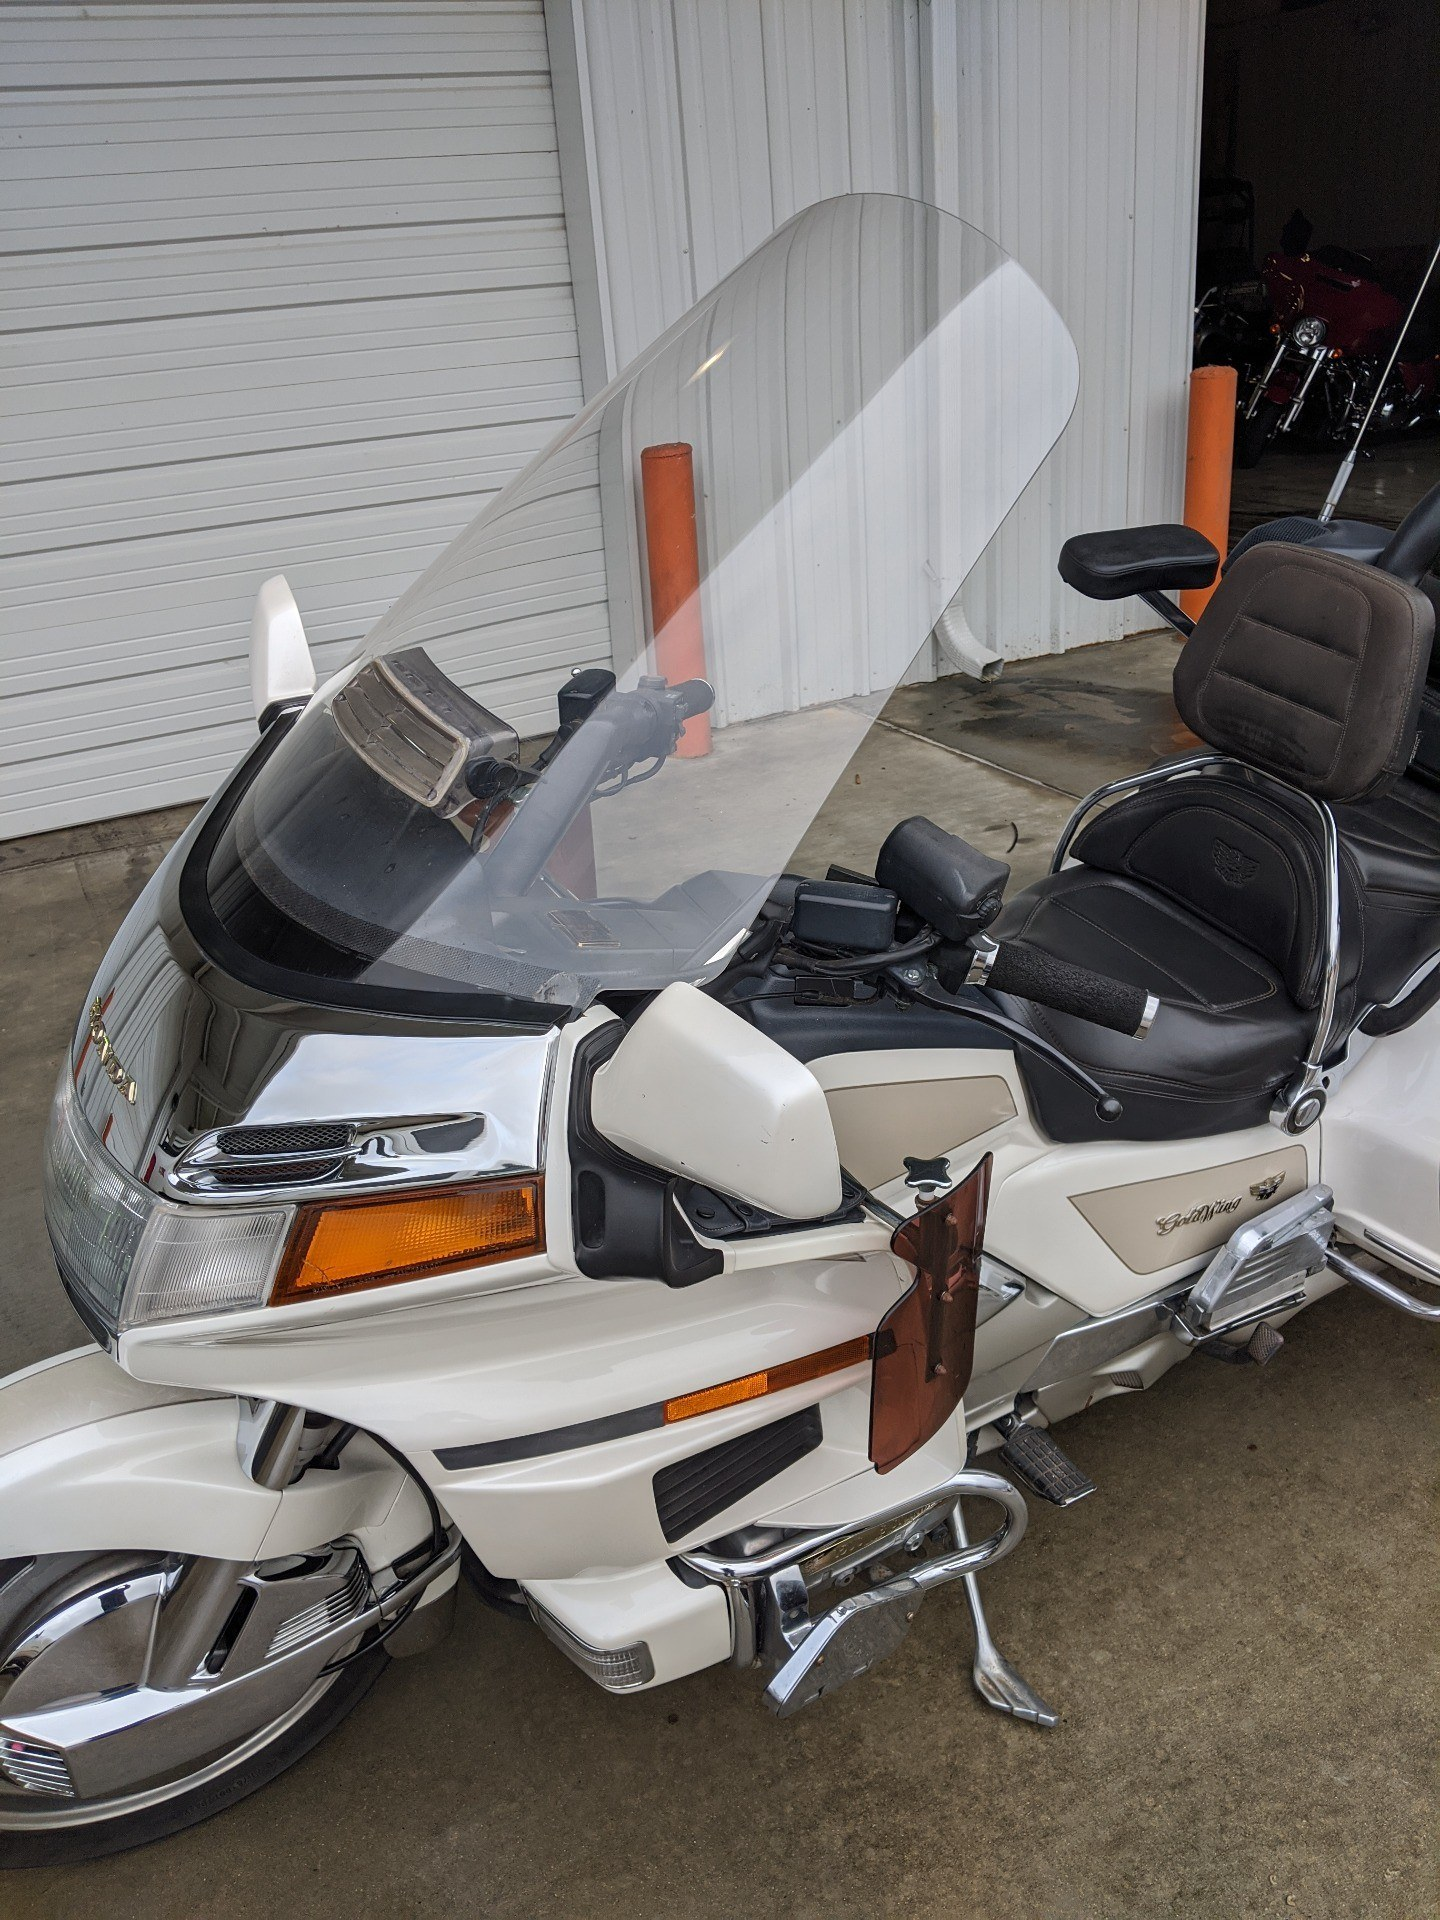 1998 Honda Gold Wing SE in Monroe, Louisiana - Photo 11